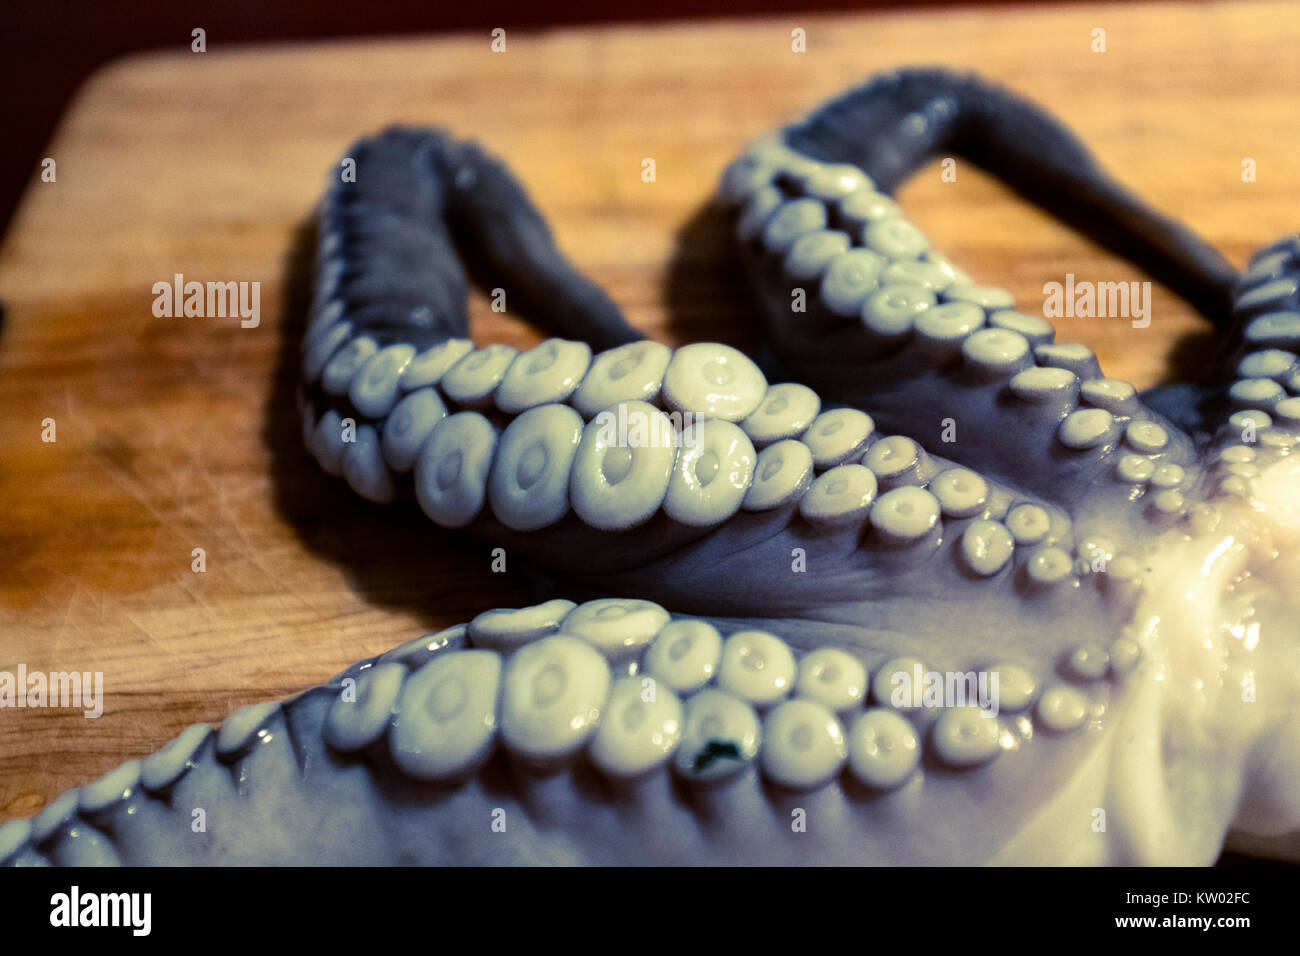 Cross-processed picture of an octopus - Stock Image